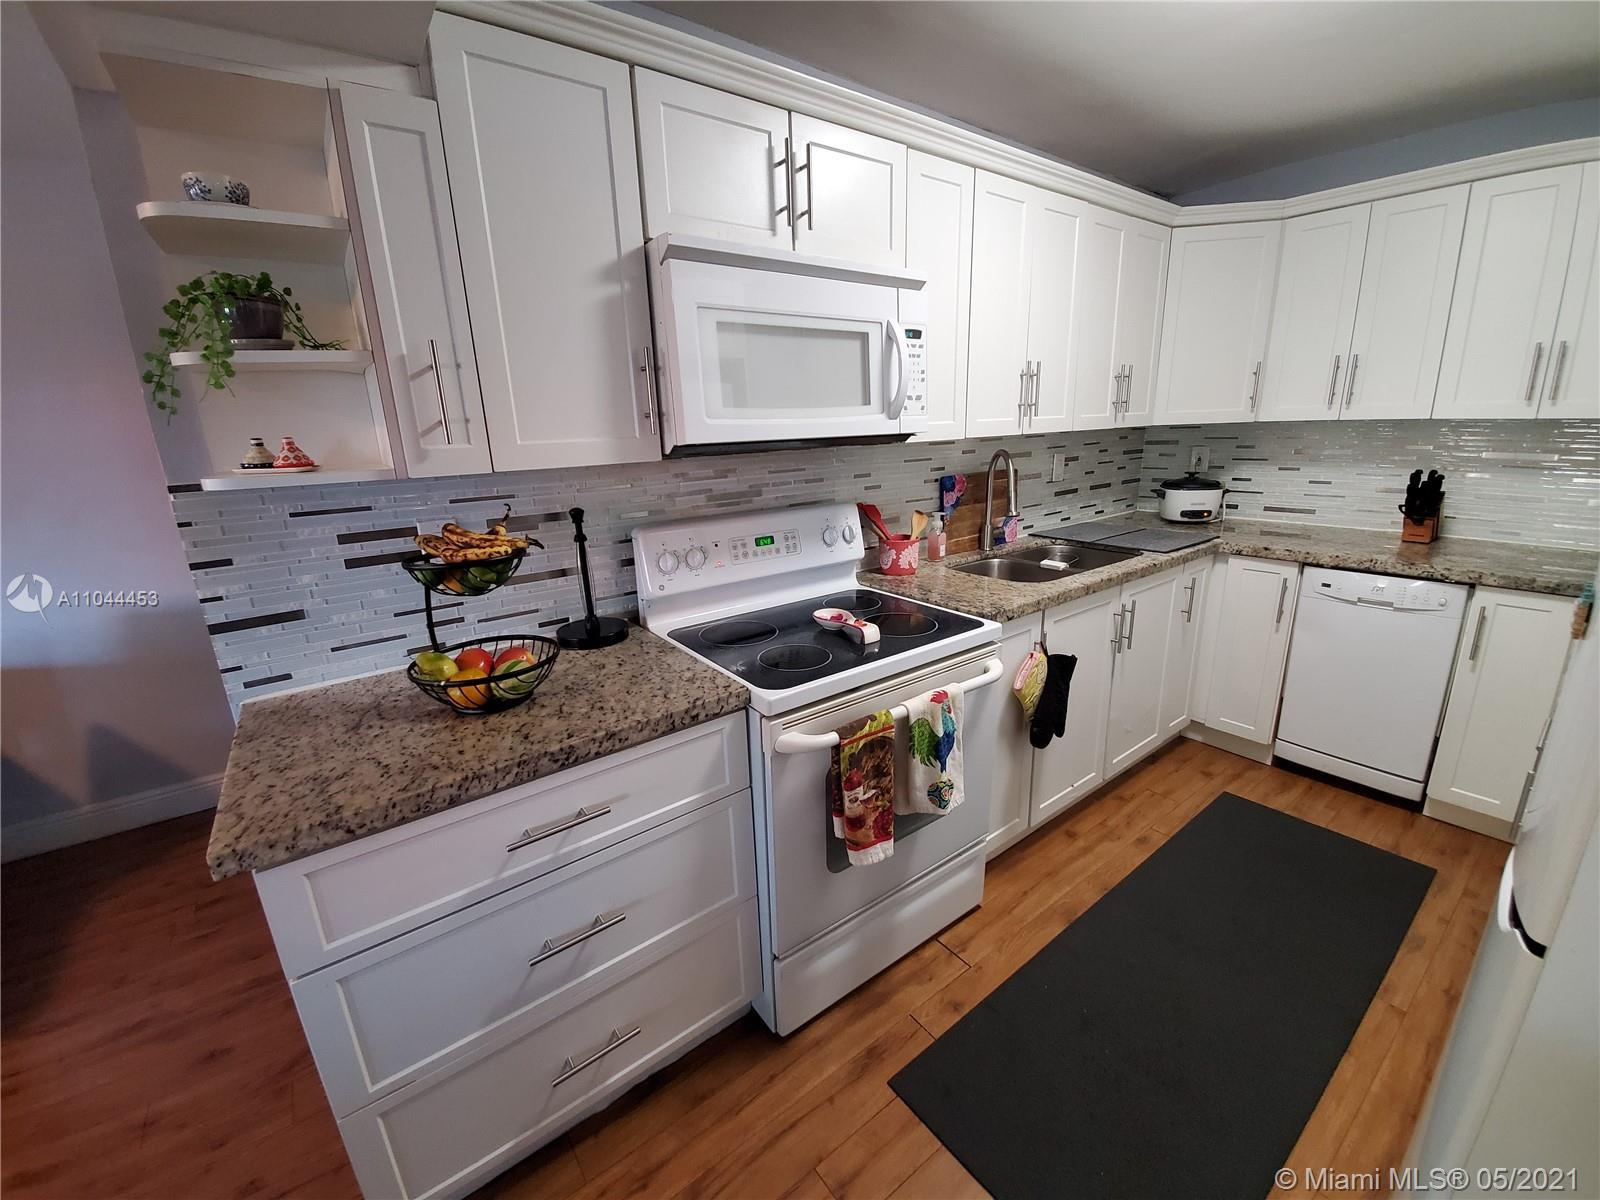 Location, Location, Location, Great Single family home in a great Area, 3 bedrooms 2 Bath cozy home